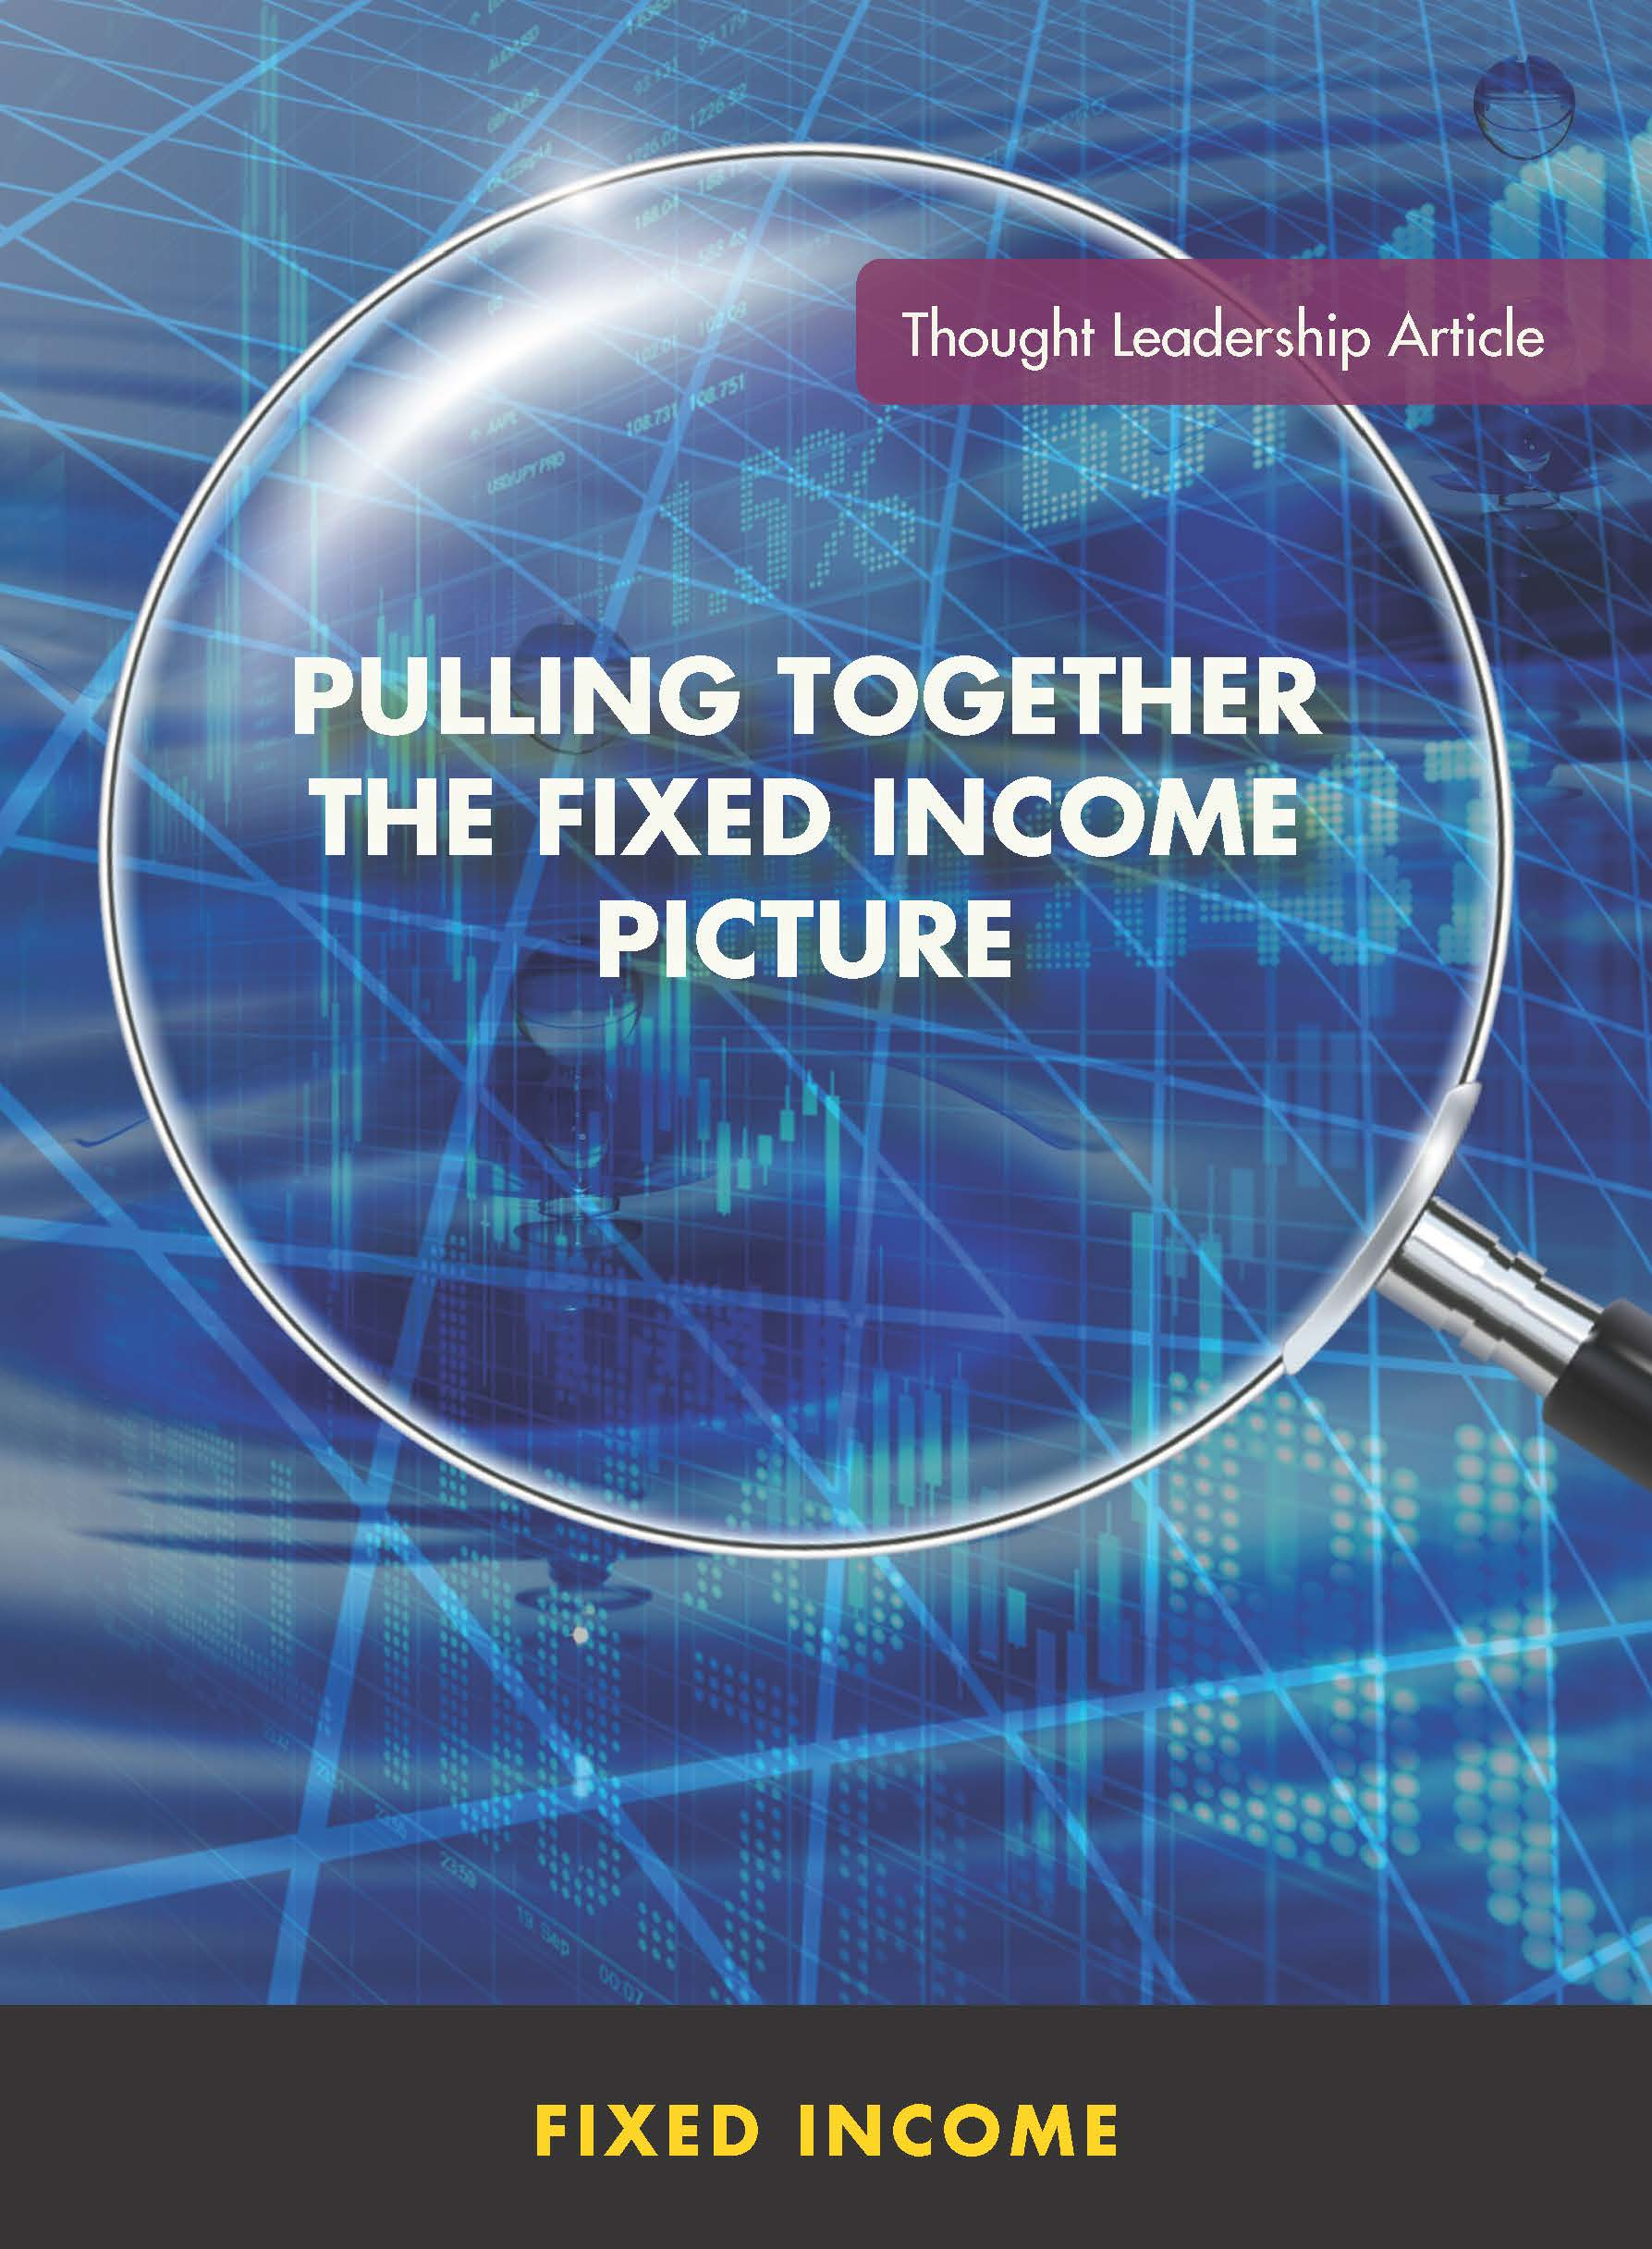 Pulling Together the Fixed Income Picture